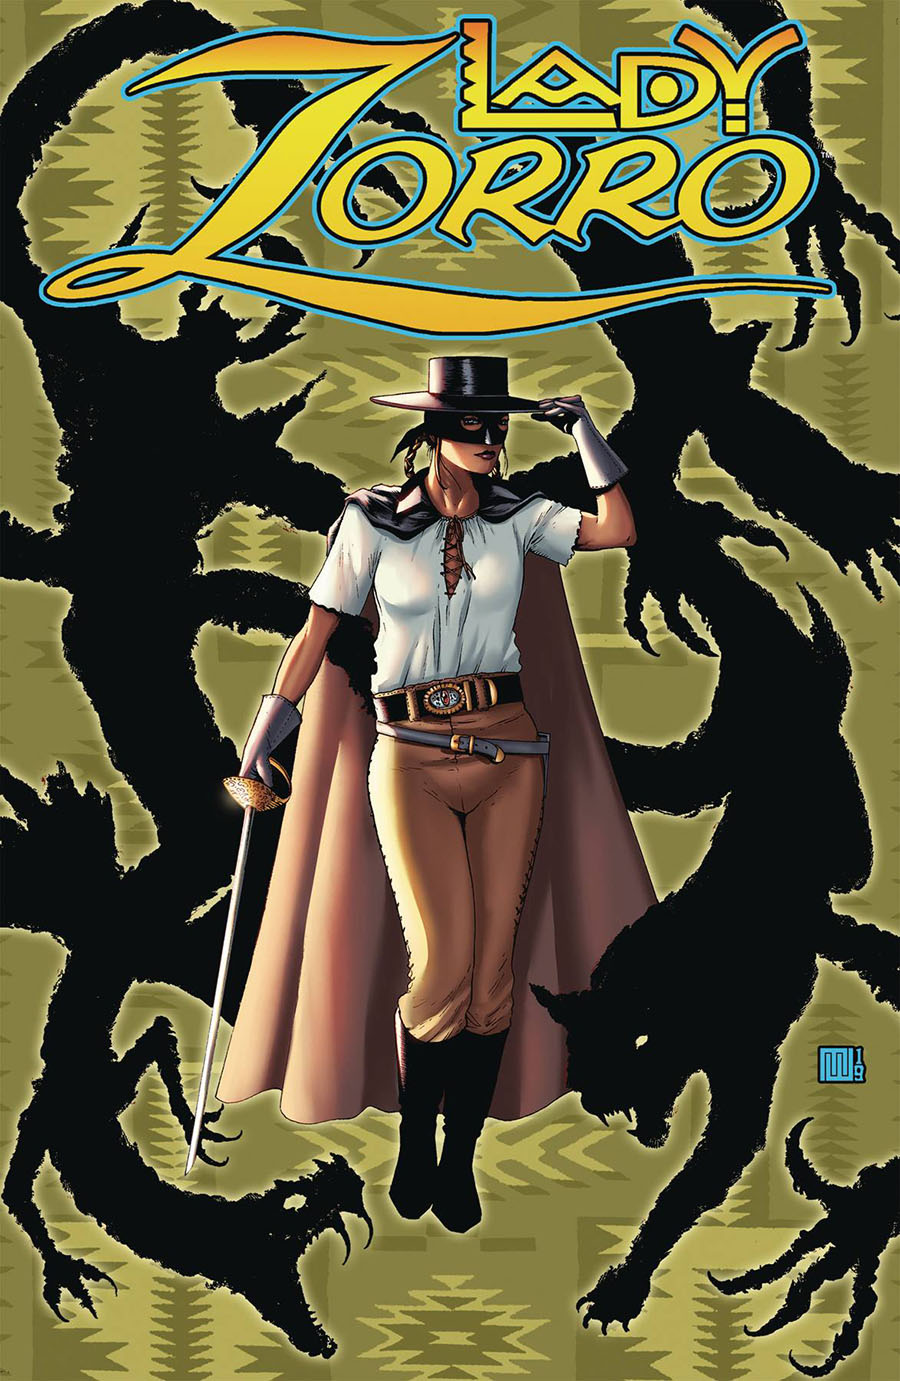 Lady Zorro Vol 2 #1 Cover C Limited Edition Mike Wolfer Pulp Cover